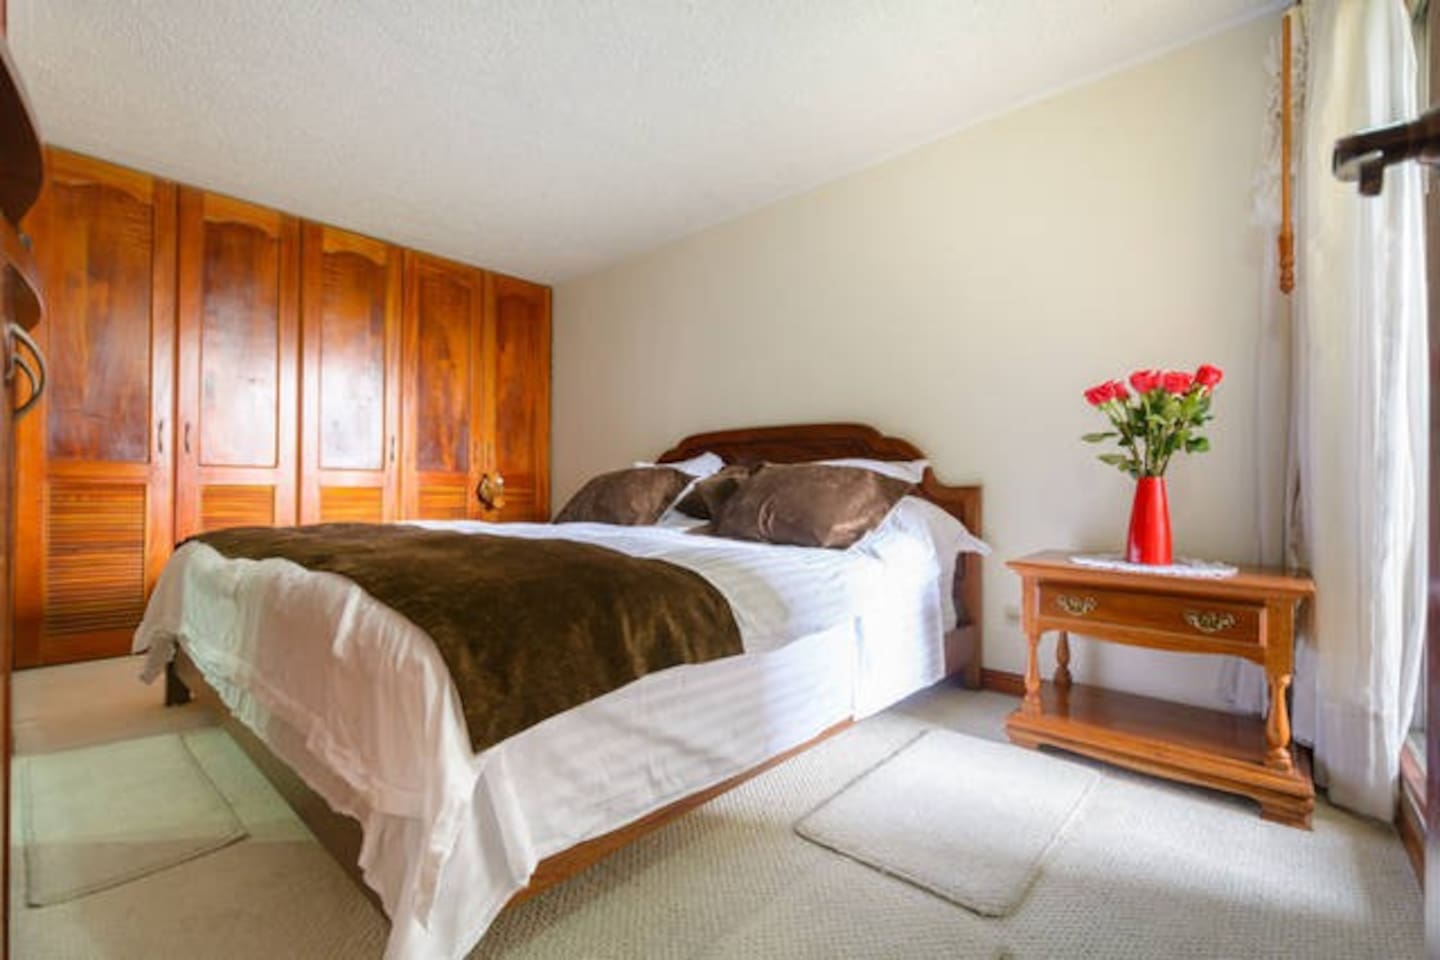 ENJOY a Very comfortable KING bed with LUXURY MATTRESS, FREE Wi-Fi, bathroom  with RELAXING HOT SHOWER and a nice LARGE CLOSET. Relax with RELIABLE FREE AIRPORT PICK UP SERVICE